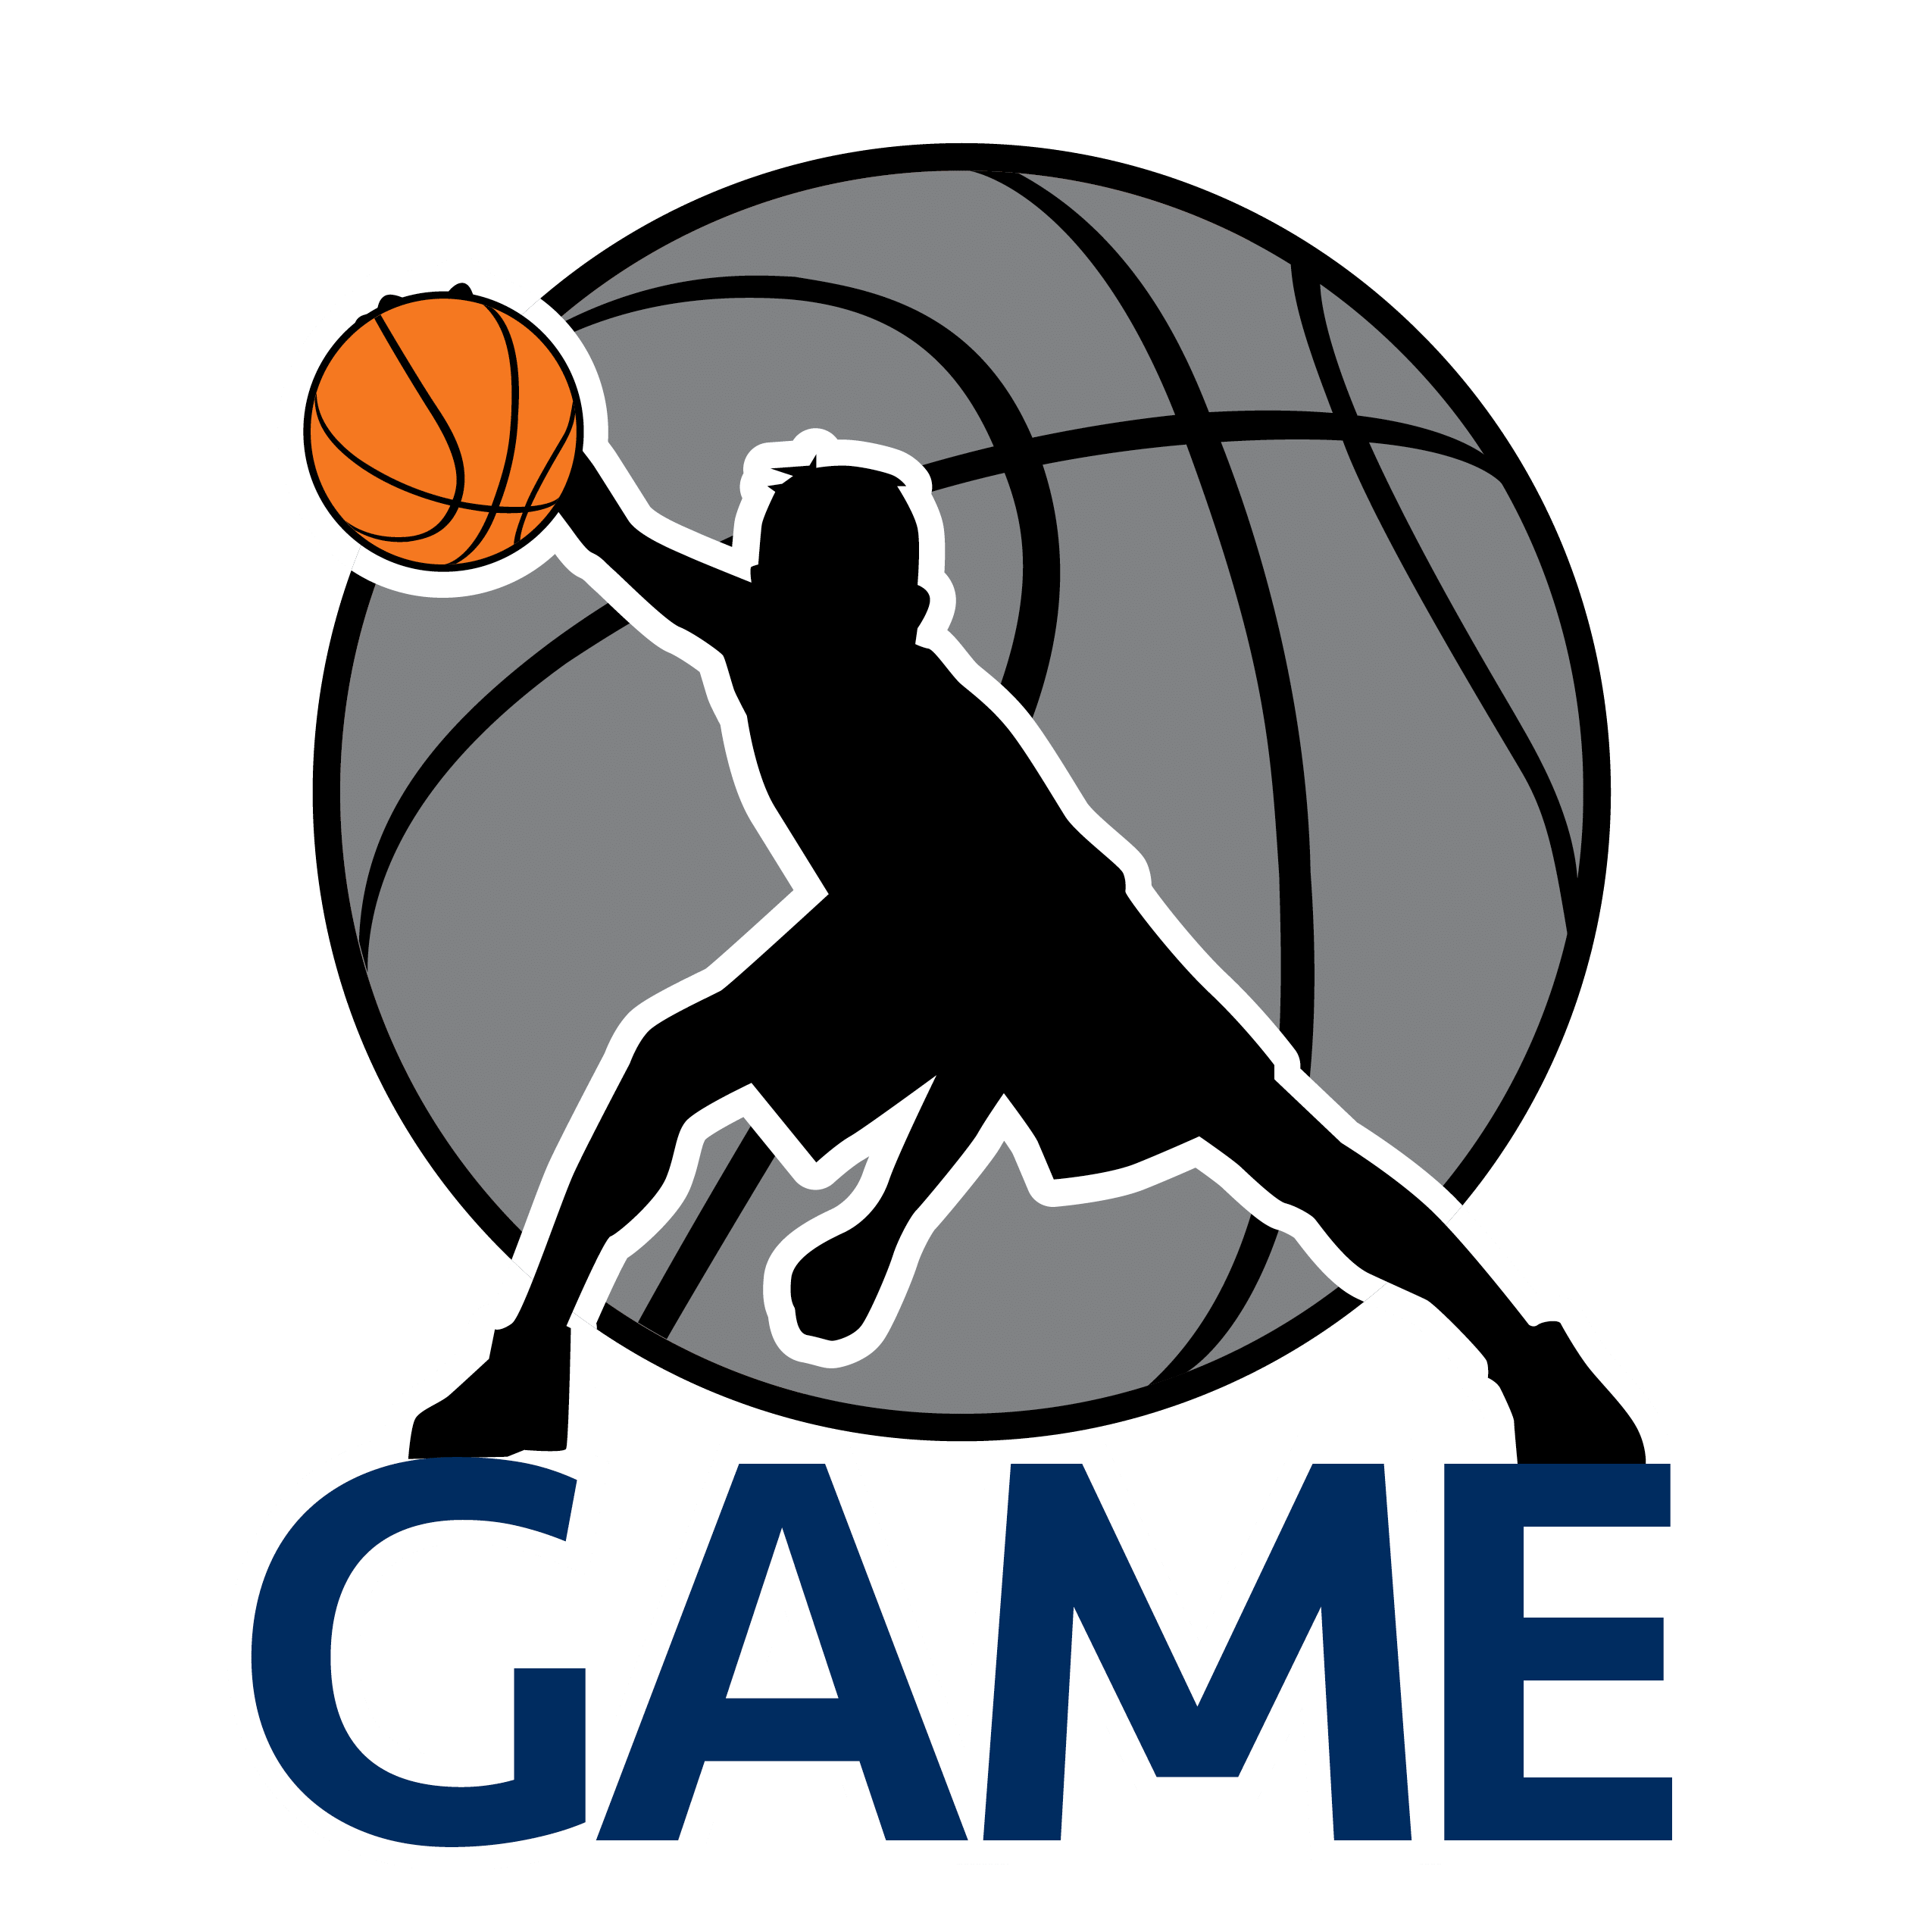 Basketball game today clipart graphic library Indiana GAME - AAU Boys Basketball Clubs - IndiHoops.com graphic library